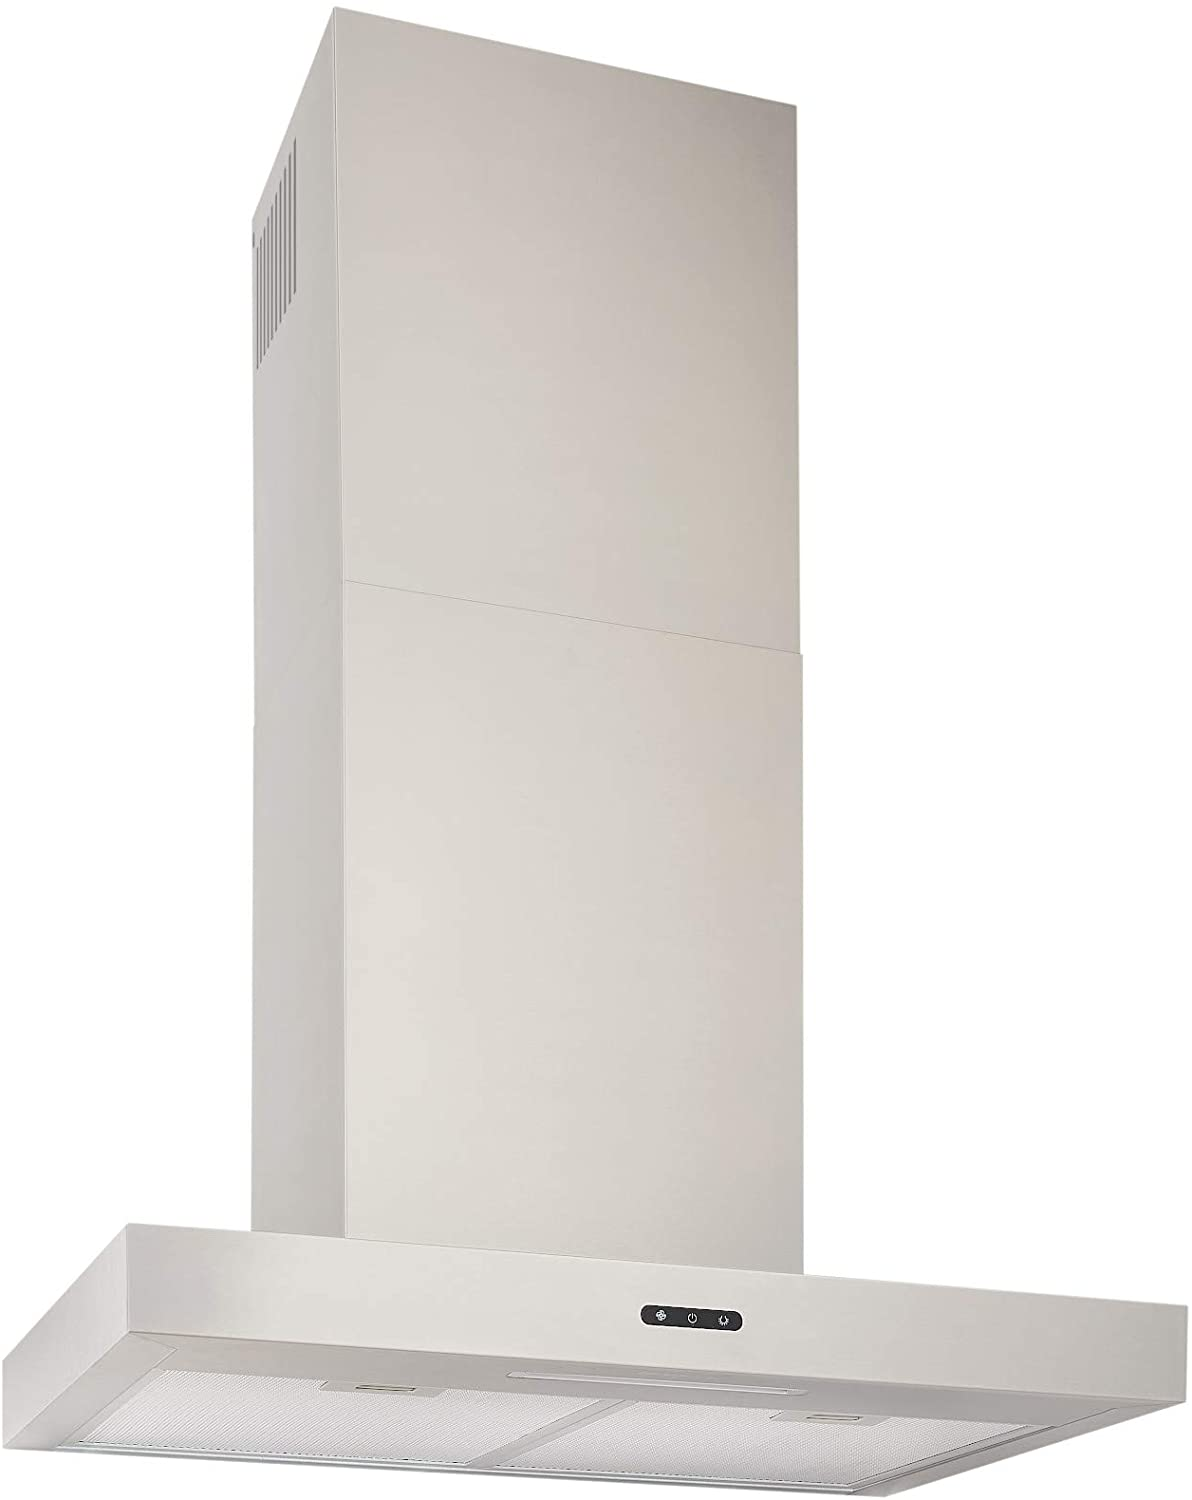 Broan-NuTone EW4324SS Wall-Mount Stainless Steel Chimney Insert with LED Light, 400 CFM, 24-Inch Range Hood